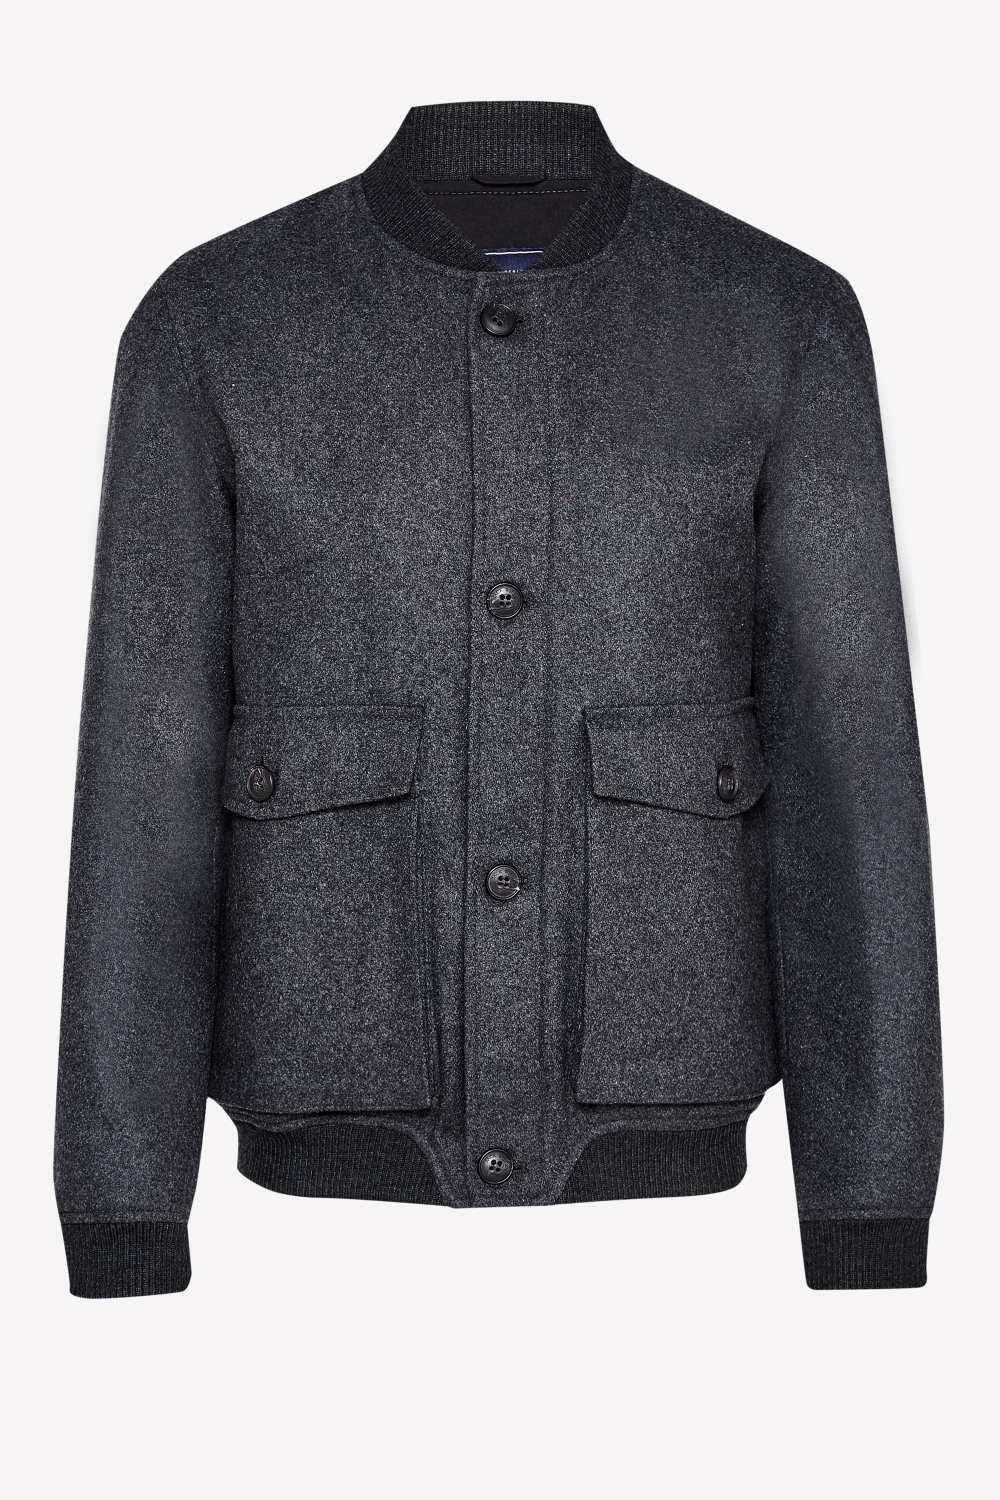 Jack Wills Charcoal BOWES WOOL BOMBER